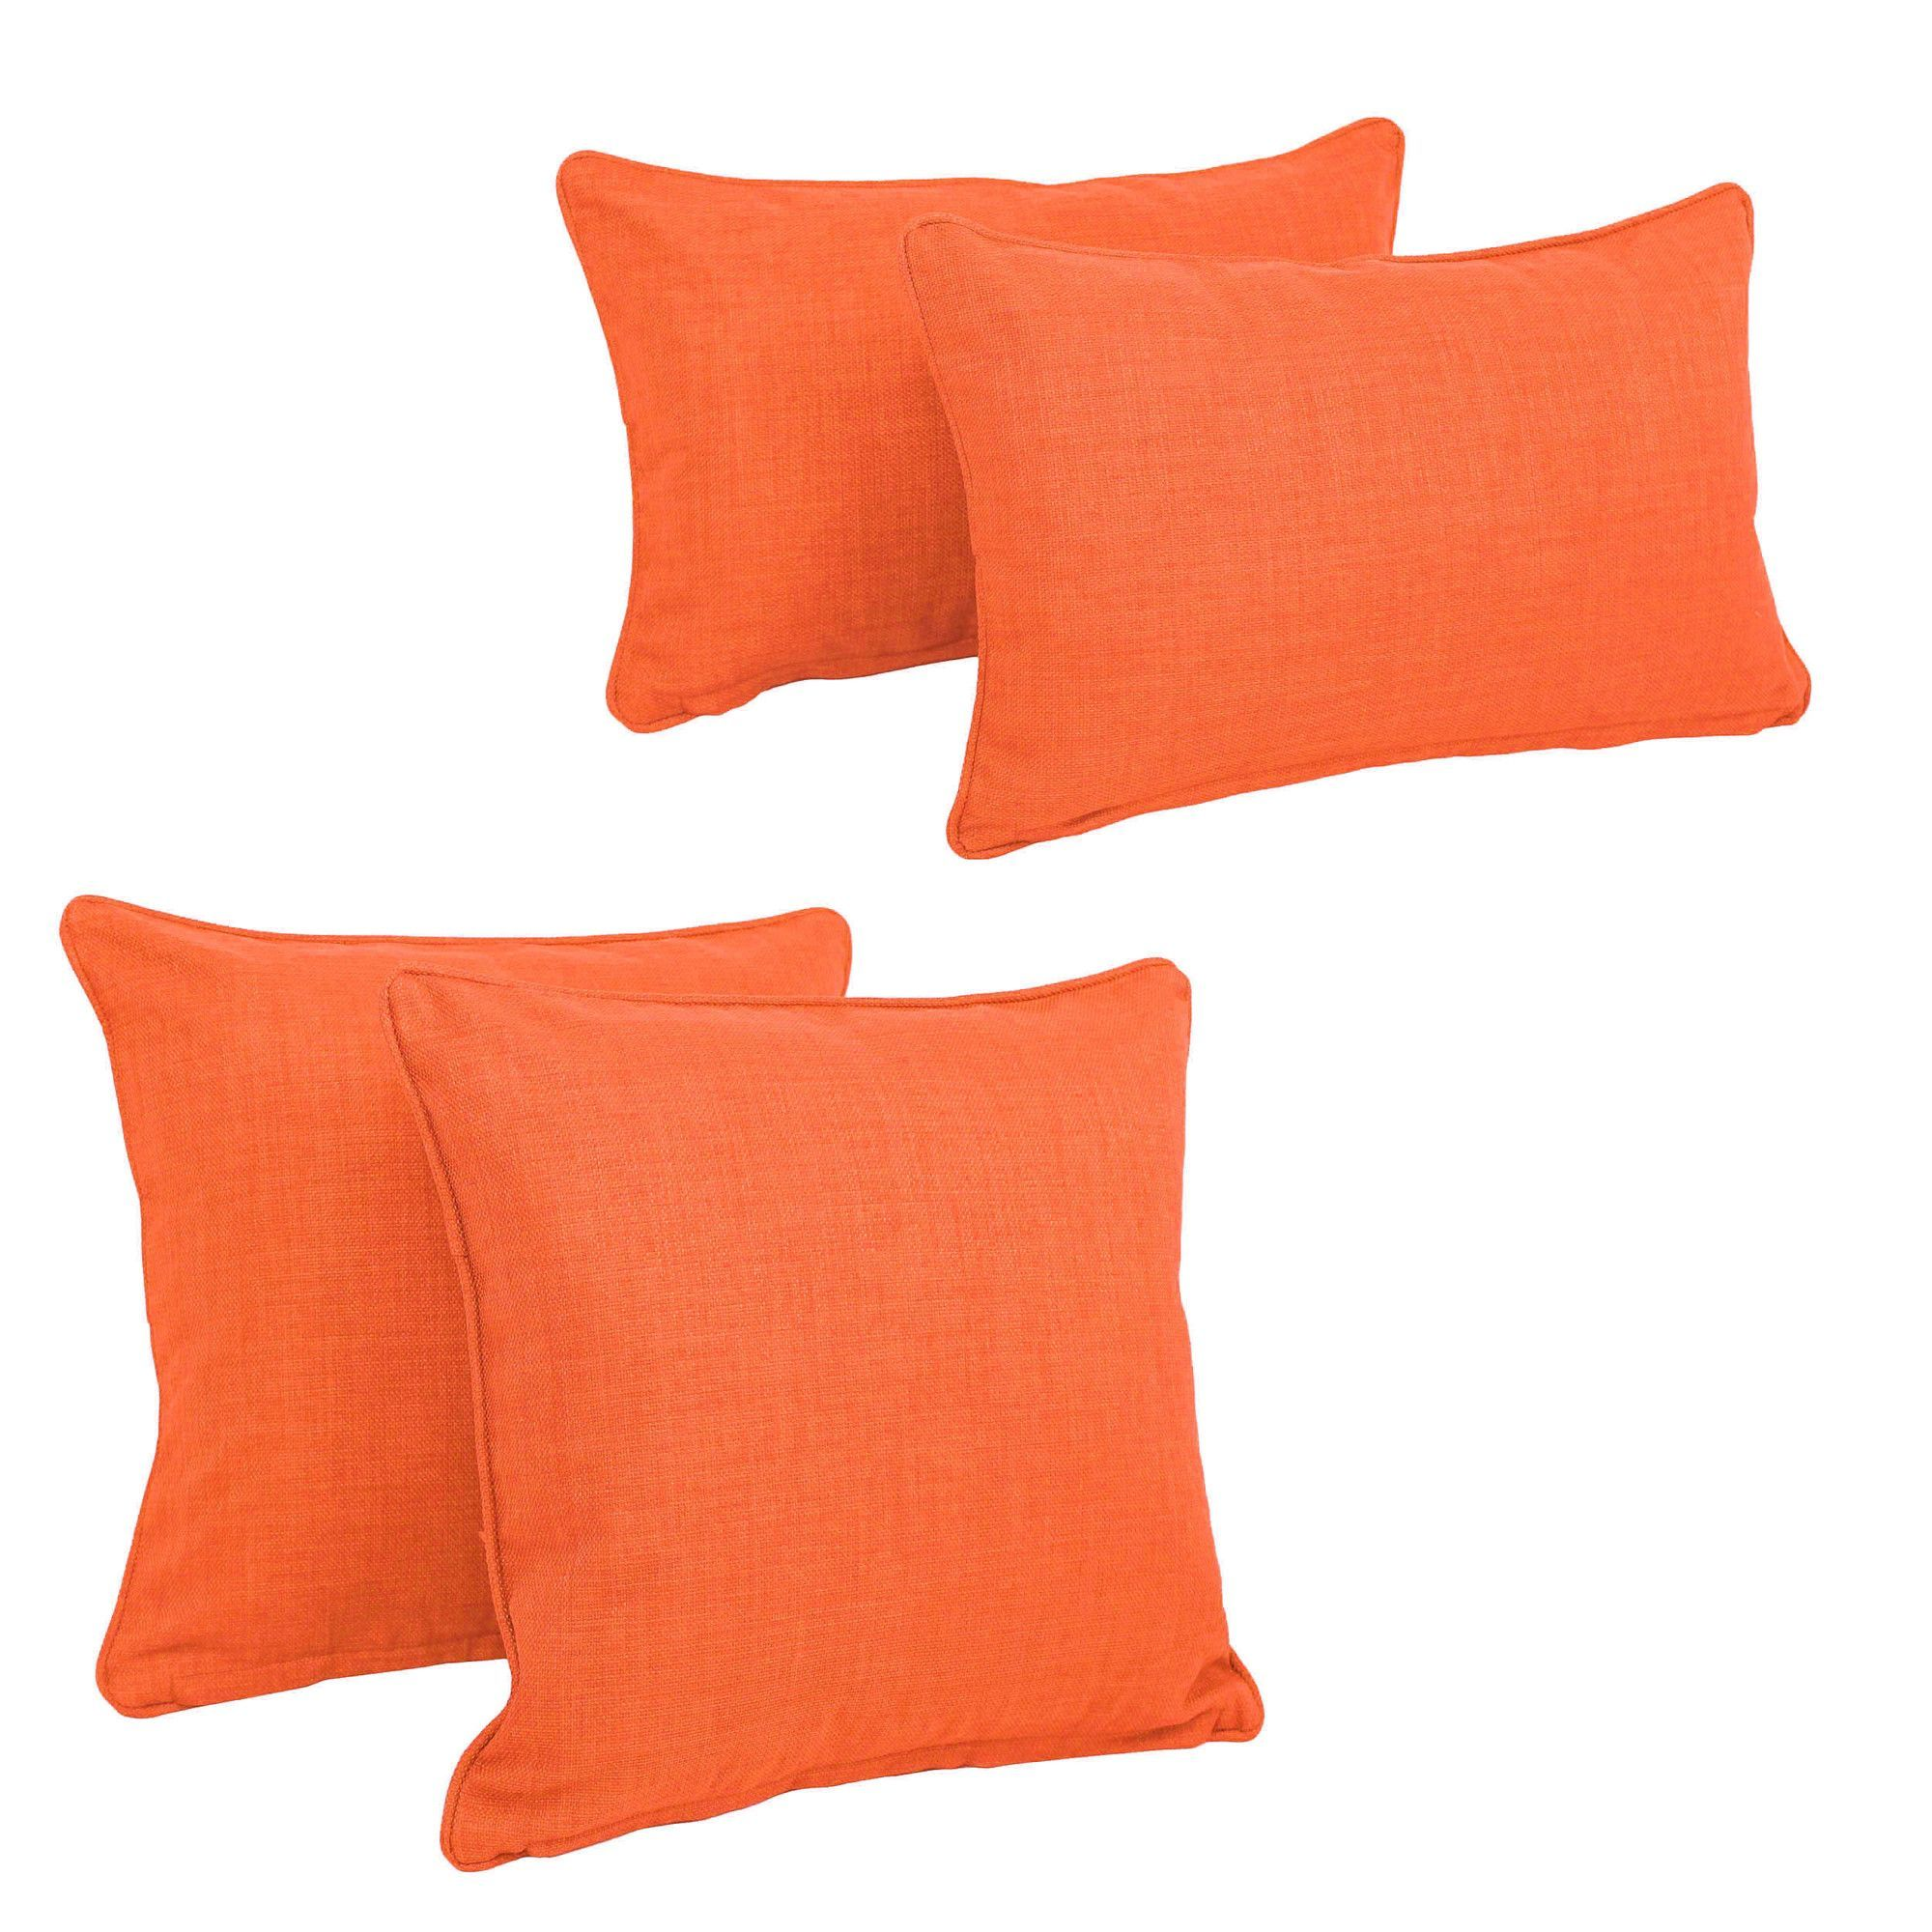 Blazing Needles Soft Home Furnishings 4 Piece Outdoor Throw Pillows ... 1711d885a